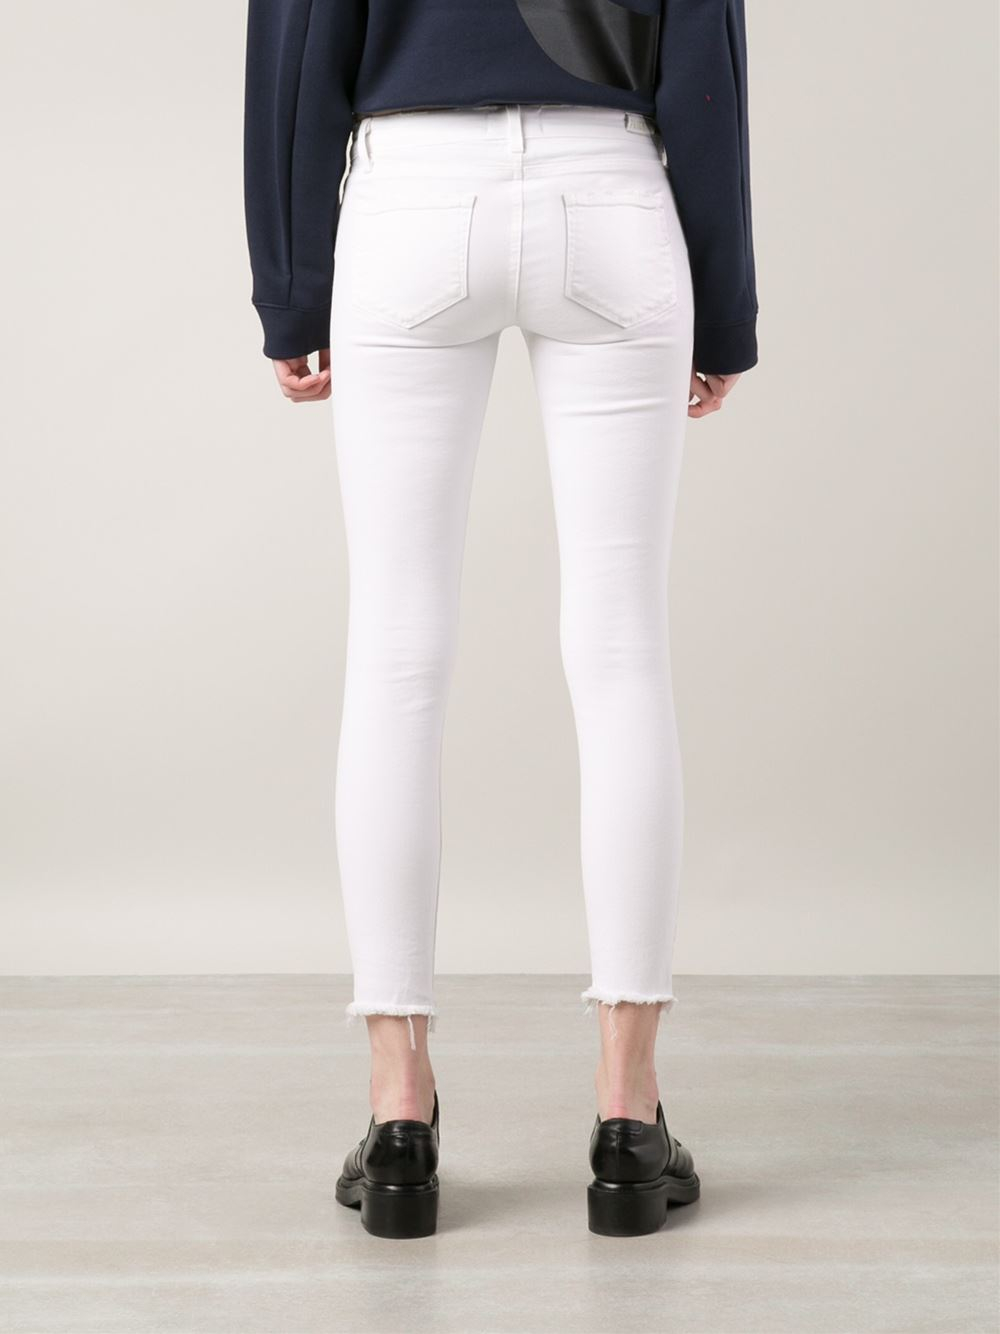 Paige White Skinny Jeans - Jeans Am